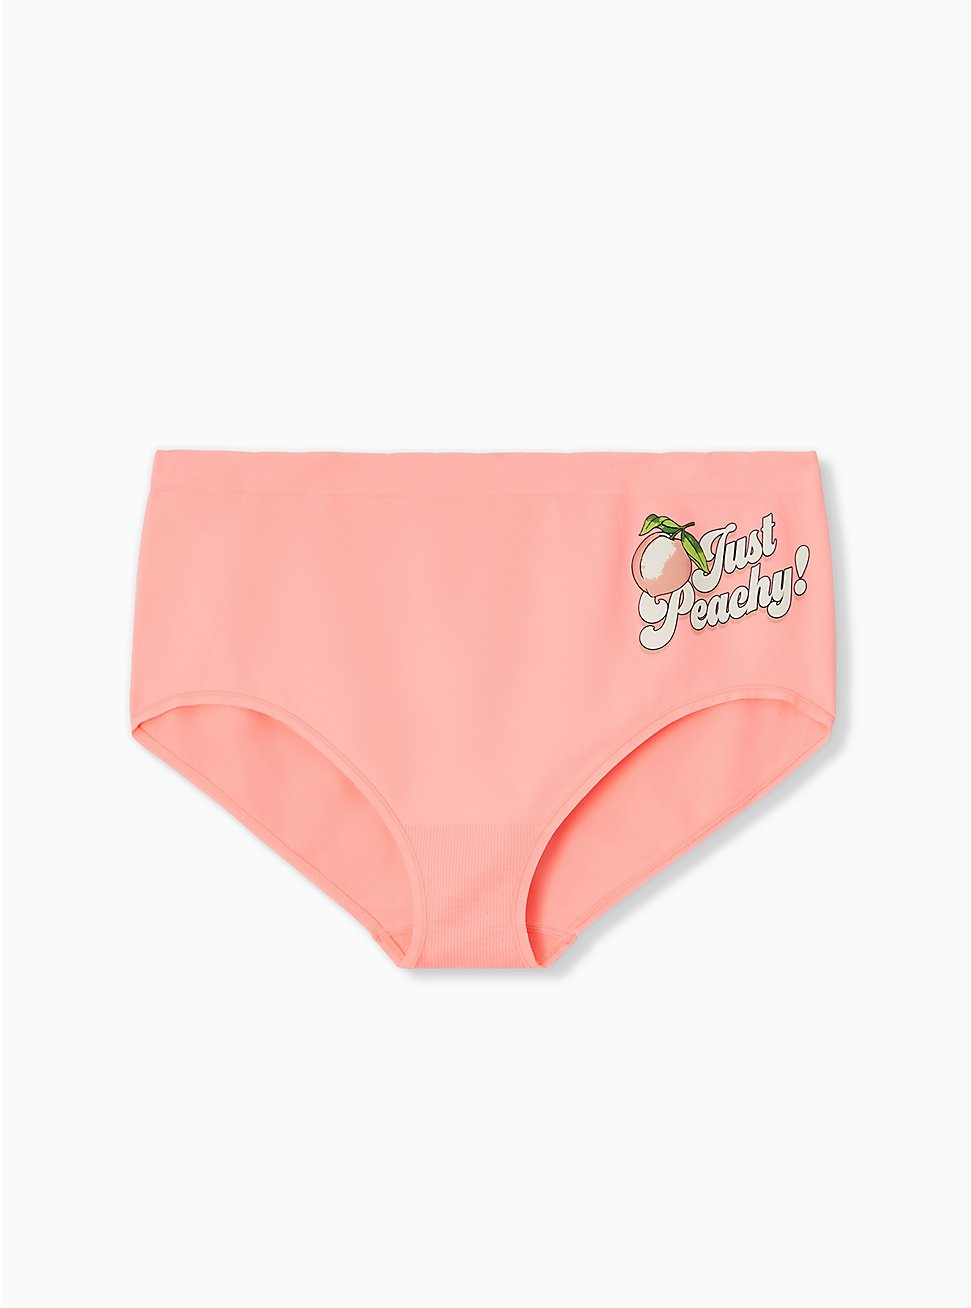 Plus Size Just Peachy Peach Pink Seamless Brief Panty, JUST PEACHY, hi-res